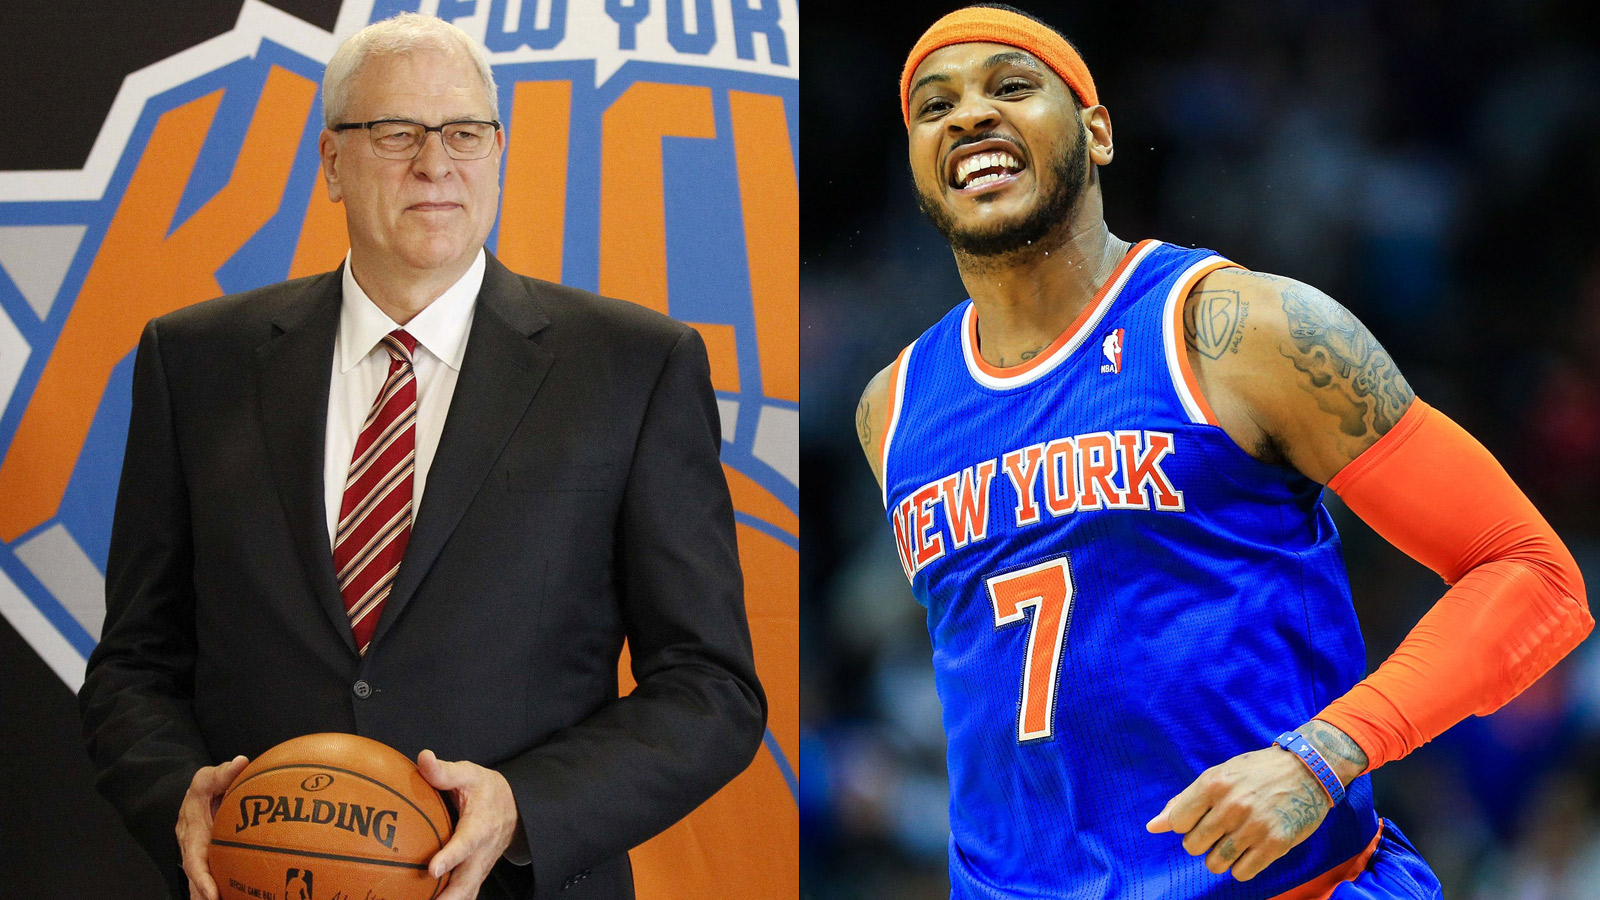 pi-nba-knicks-phil-jackson-carmelo-anthony-032014